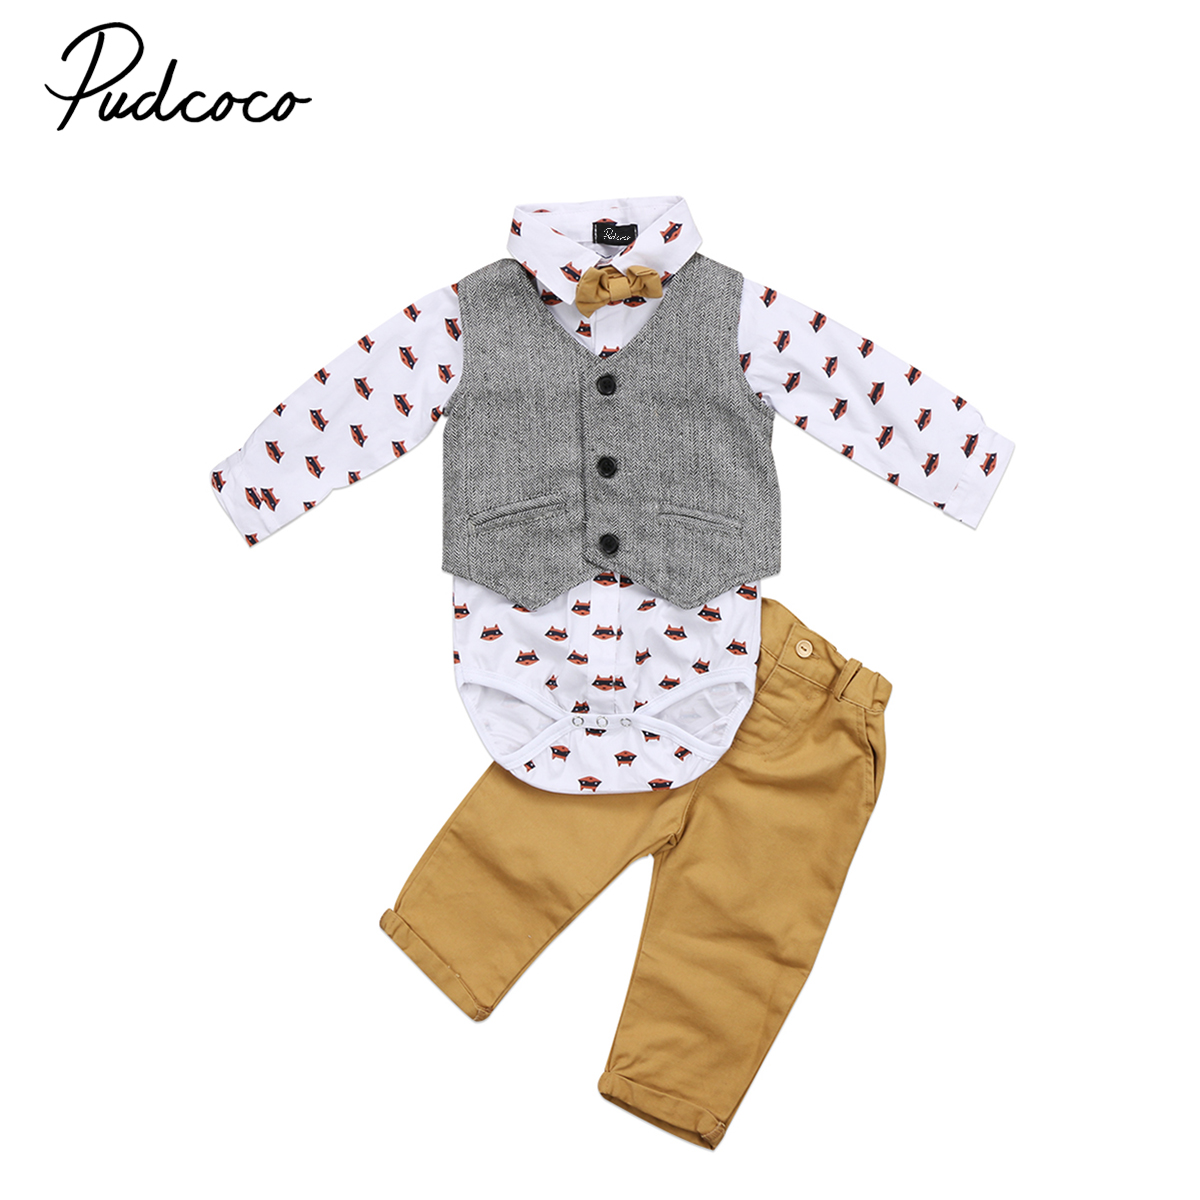 Spring Autumn Boys Gentleman Outfits Newborn Baby Boy Formal Suit Waistcoat Tops Shirt Rompers Denim Pants Set Bowtie Outfit 2018 spring newborn baby boy clothes gentleman baby boy long sleeved plaid shirt vest pants boy outfits shirt pants set